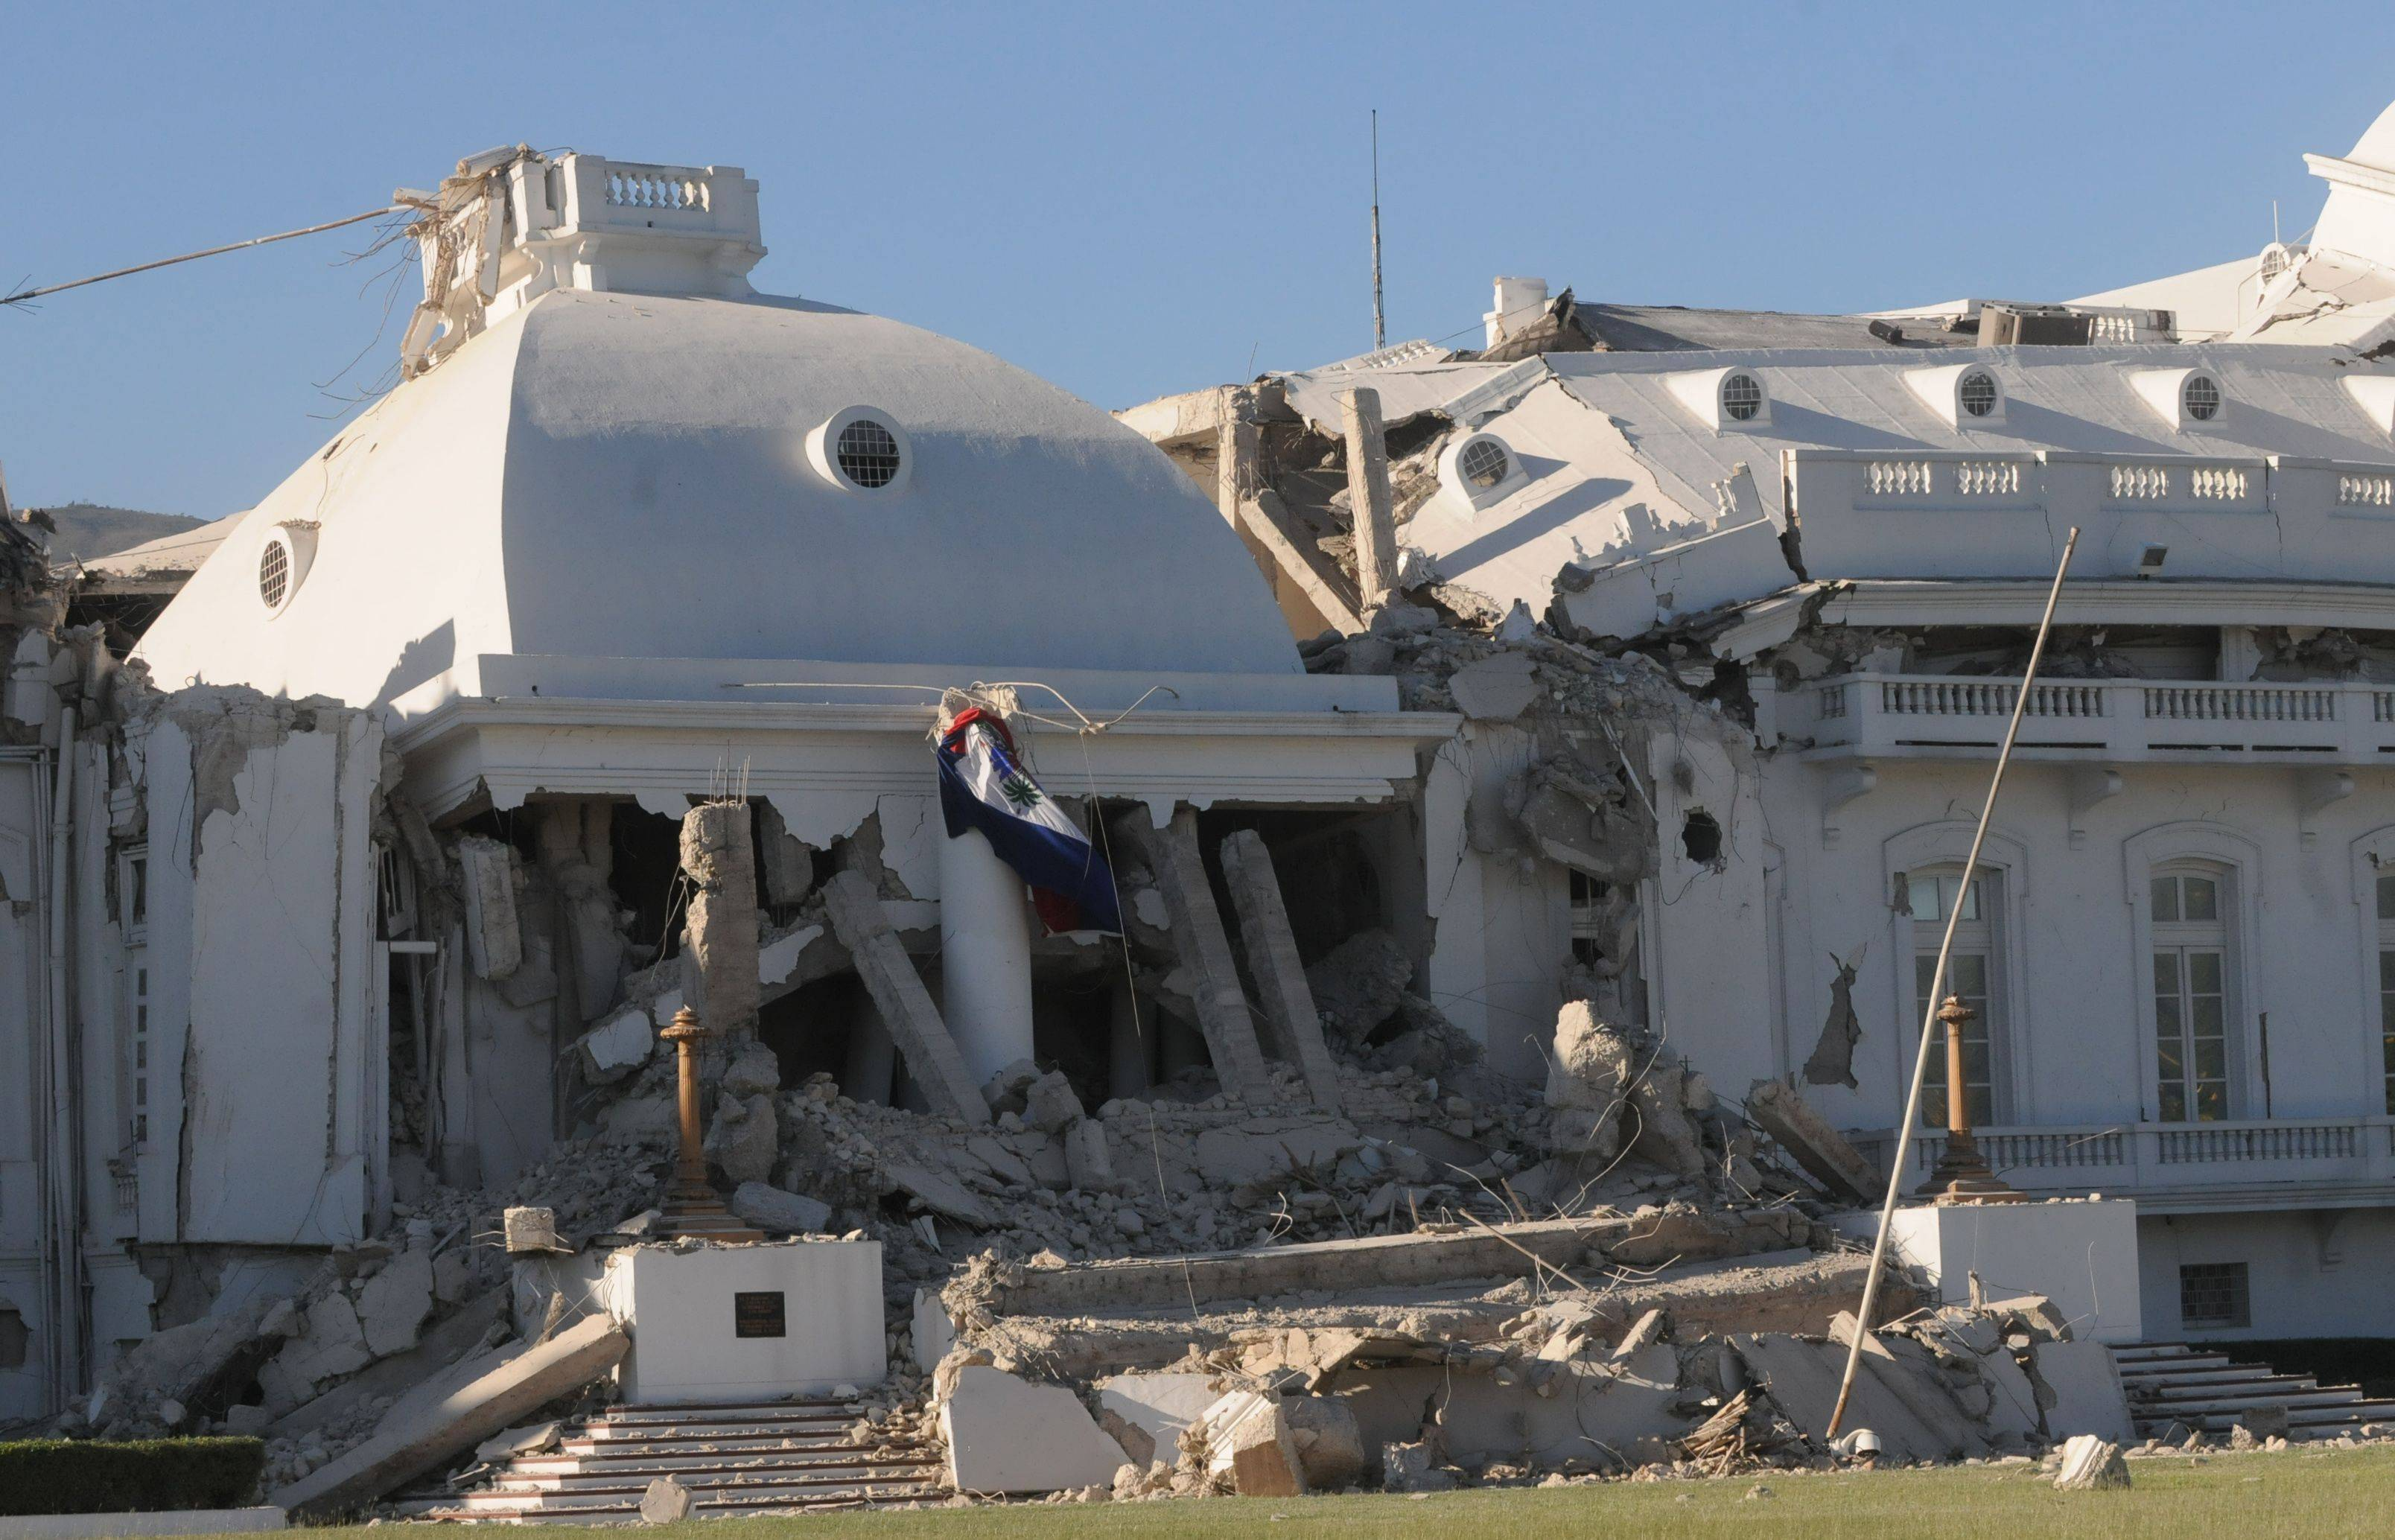 Haiti's National Palace is seen damaged in Port-au-Prince, Wednesday, Jan. 13, 2010 after a powerful earthquake struck the country.